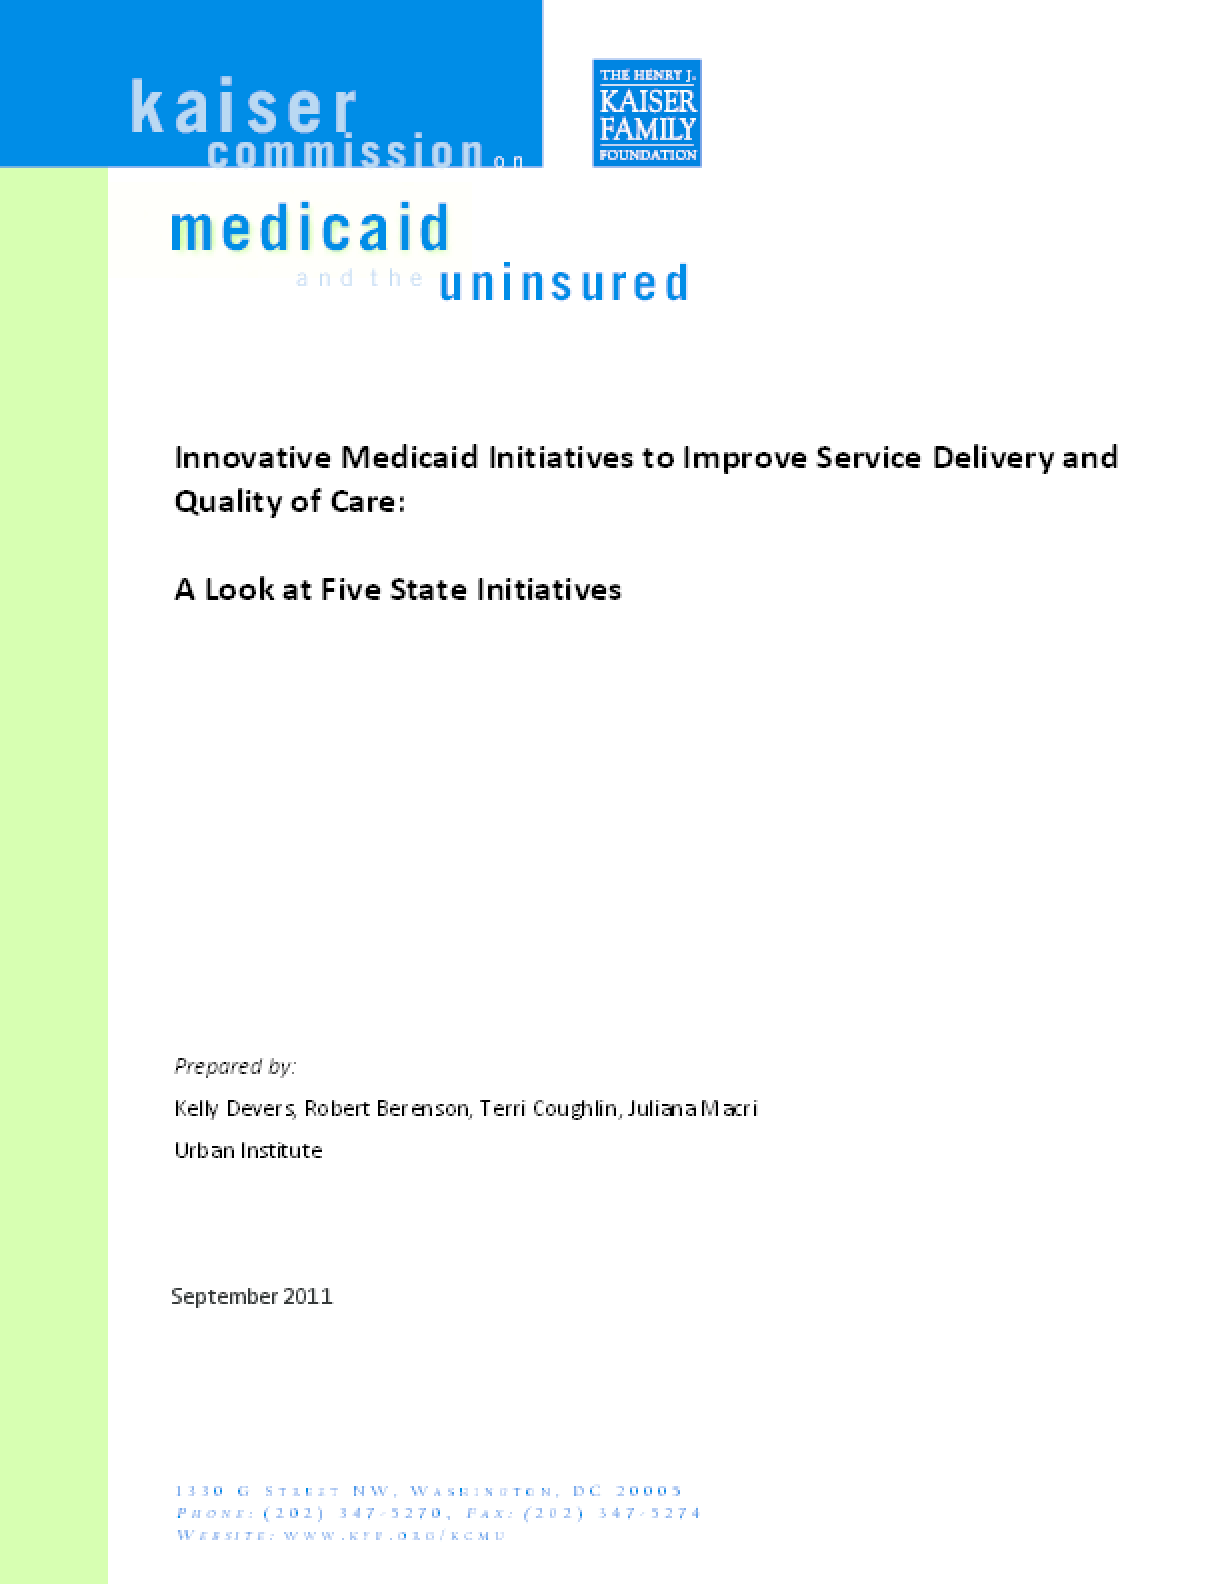 Innovative Medicaid Initiatives to Improve Service Delivery and Quality of Care: A Look at Five State Initiatives